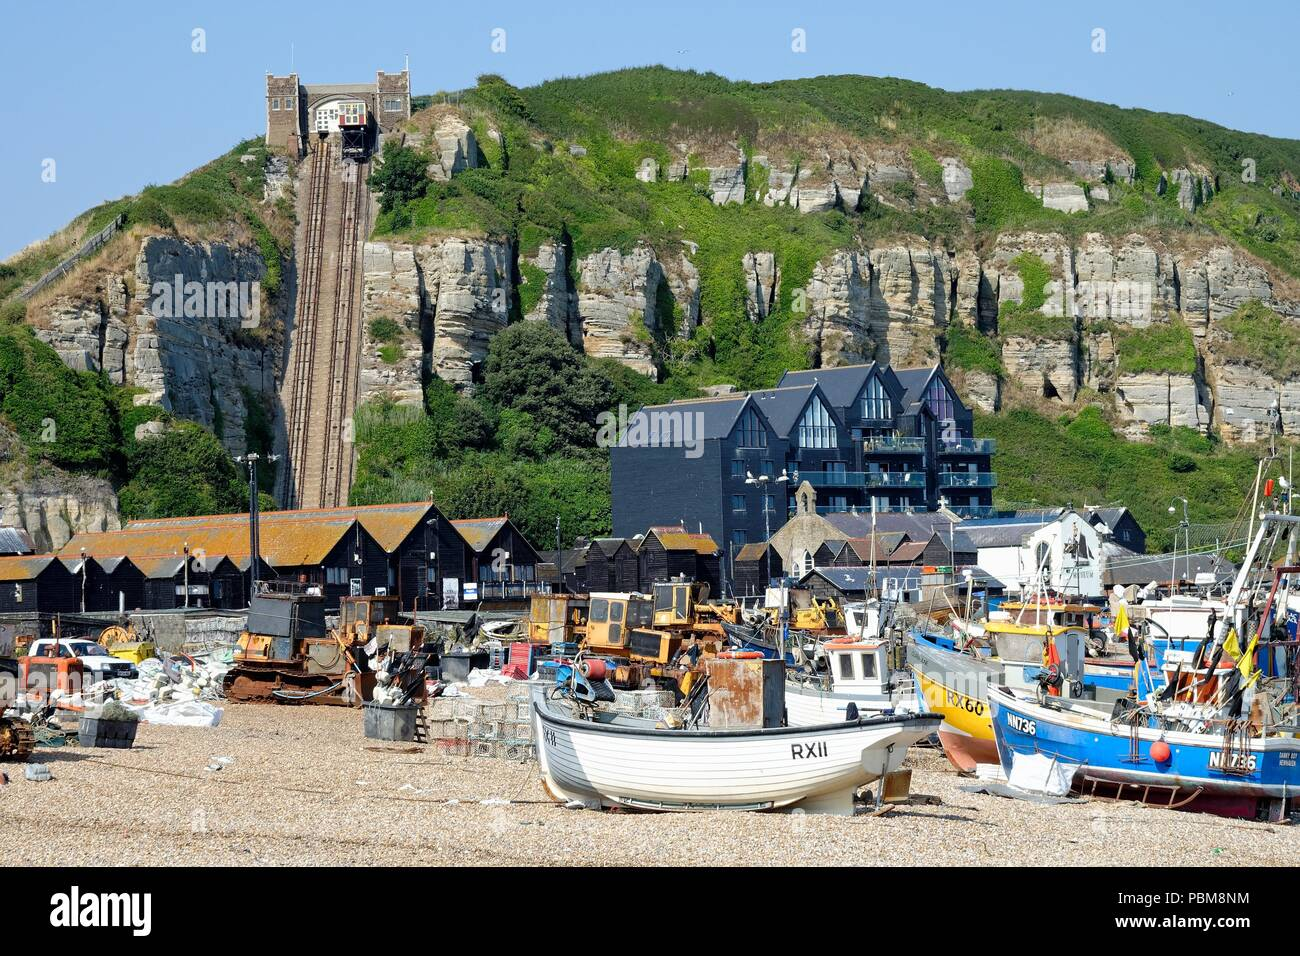 The old Town of Hastings  showing the largest beach launched fishing fleet in Europe East Sussex England UK - Stock Image